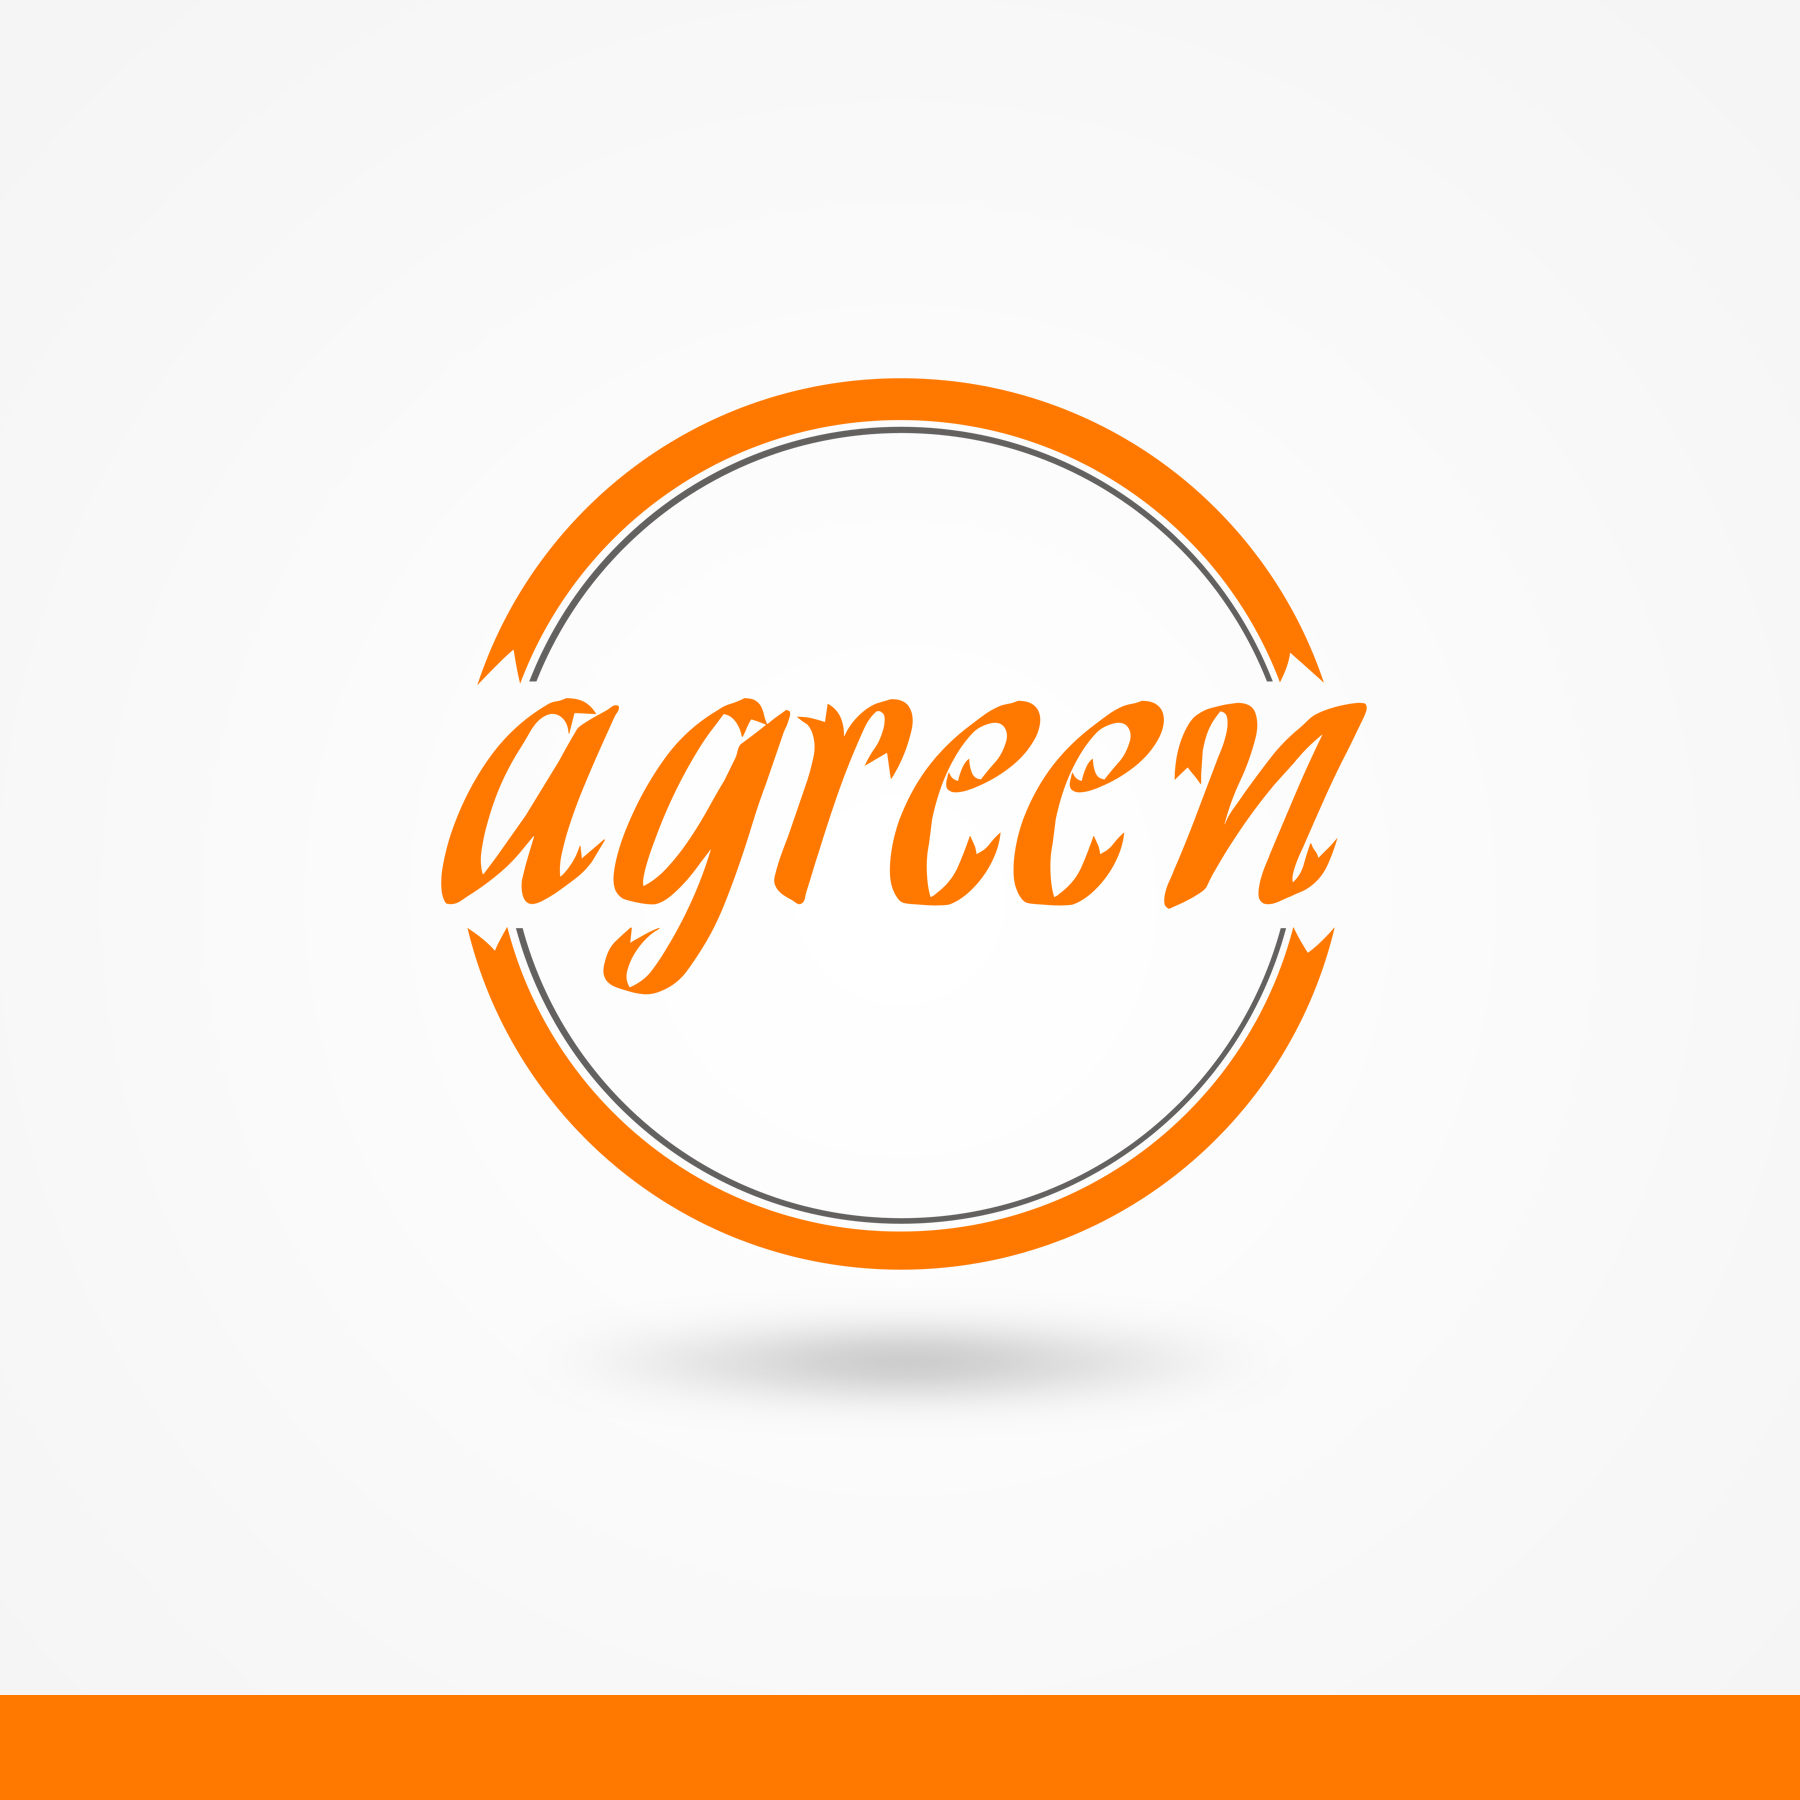 Logo Design by omARTist - Entry No. 121 in the Logo Design Contest Inspiring Logo Design for Agreen.